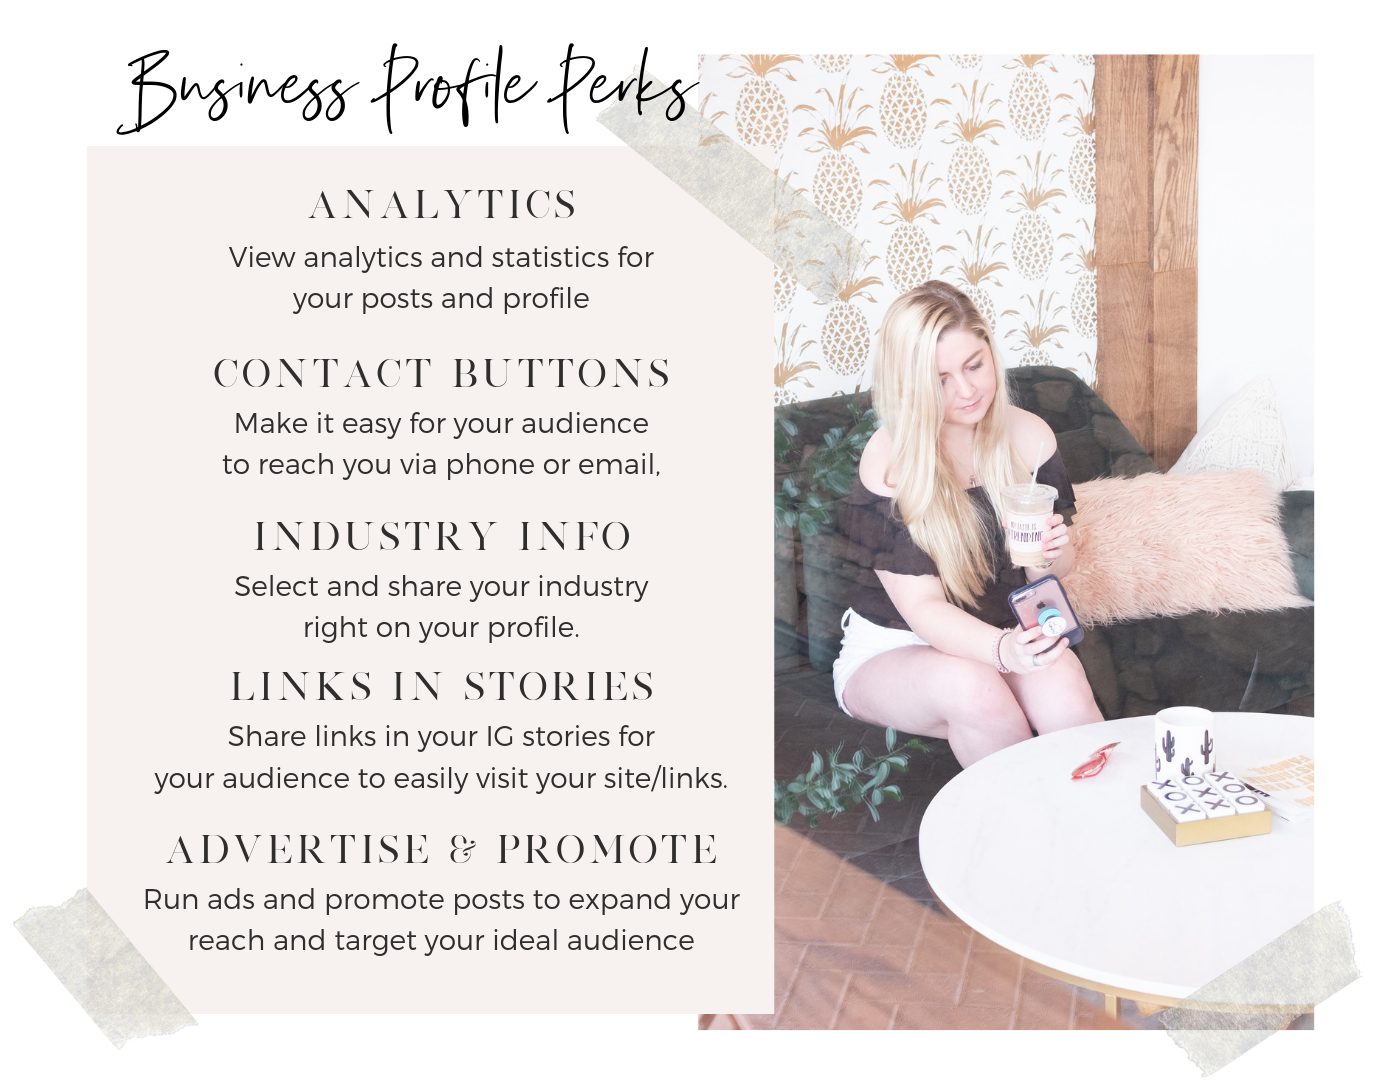 instagram business profile perks